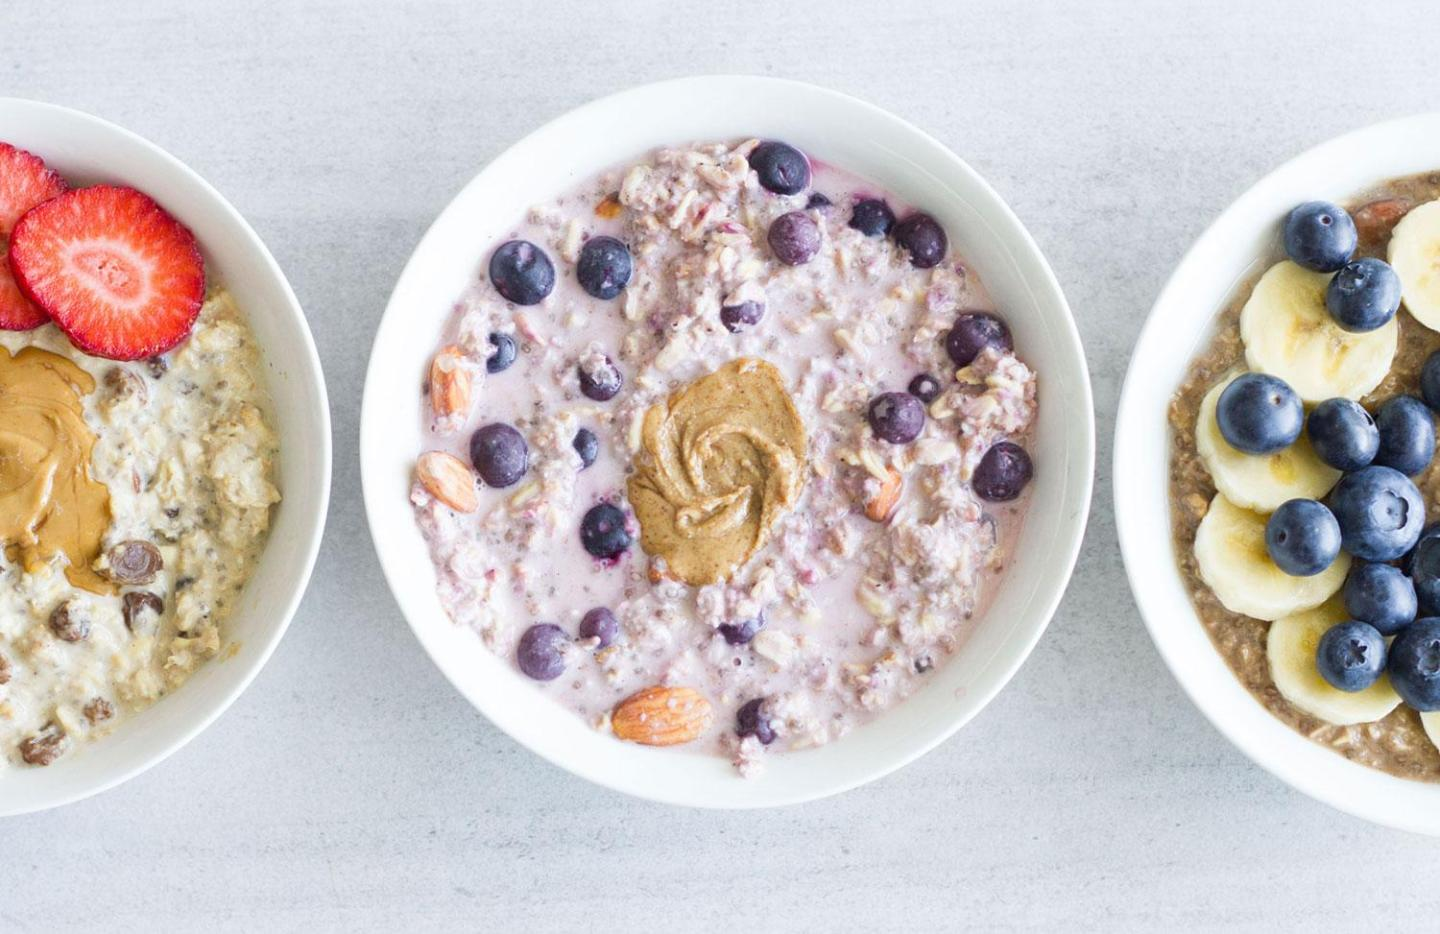 3 Easy Overnight Oats Recipes (gluten-free, sugar-free, dairy-free)